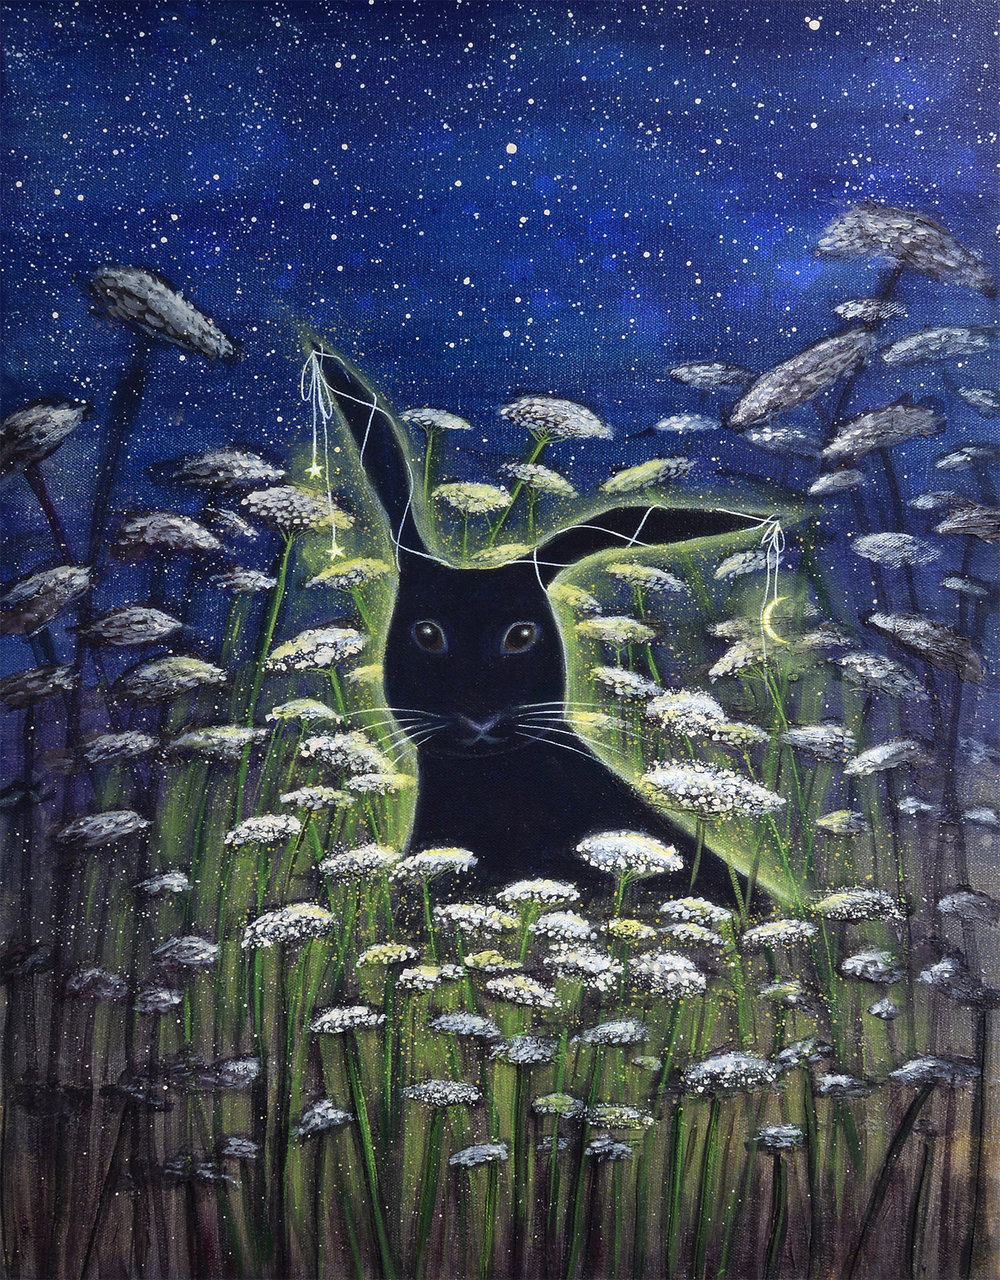 THE NIGHT RABBIT  18X24 Mixed-Media   Acrylic on Gallery Canvas  SOLD  I'm amazed at how a kind word, an inspiring story, or even just a good walk under tall trees can lift me up out of brooding, sad thoughts. One afternoon, as I was going for one of my long walks under tall trees, I was thinking about how suddenly darkness can lift—even when it seems like it could go on forever. That's when I envisioned The Night Rabbit. It immediately made me smile—that shadow-black bunny, with a shimmering glow of hope around him. He represents all those wonderful thoughts, and beautiful scenes that can sneak up on you even as you were right in the middle of a brooding, sad thought. I believe God sends those hopeful ideas and that's why they're powerful. I love The Night Rabbit!